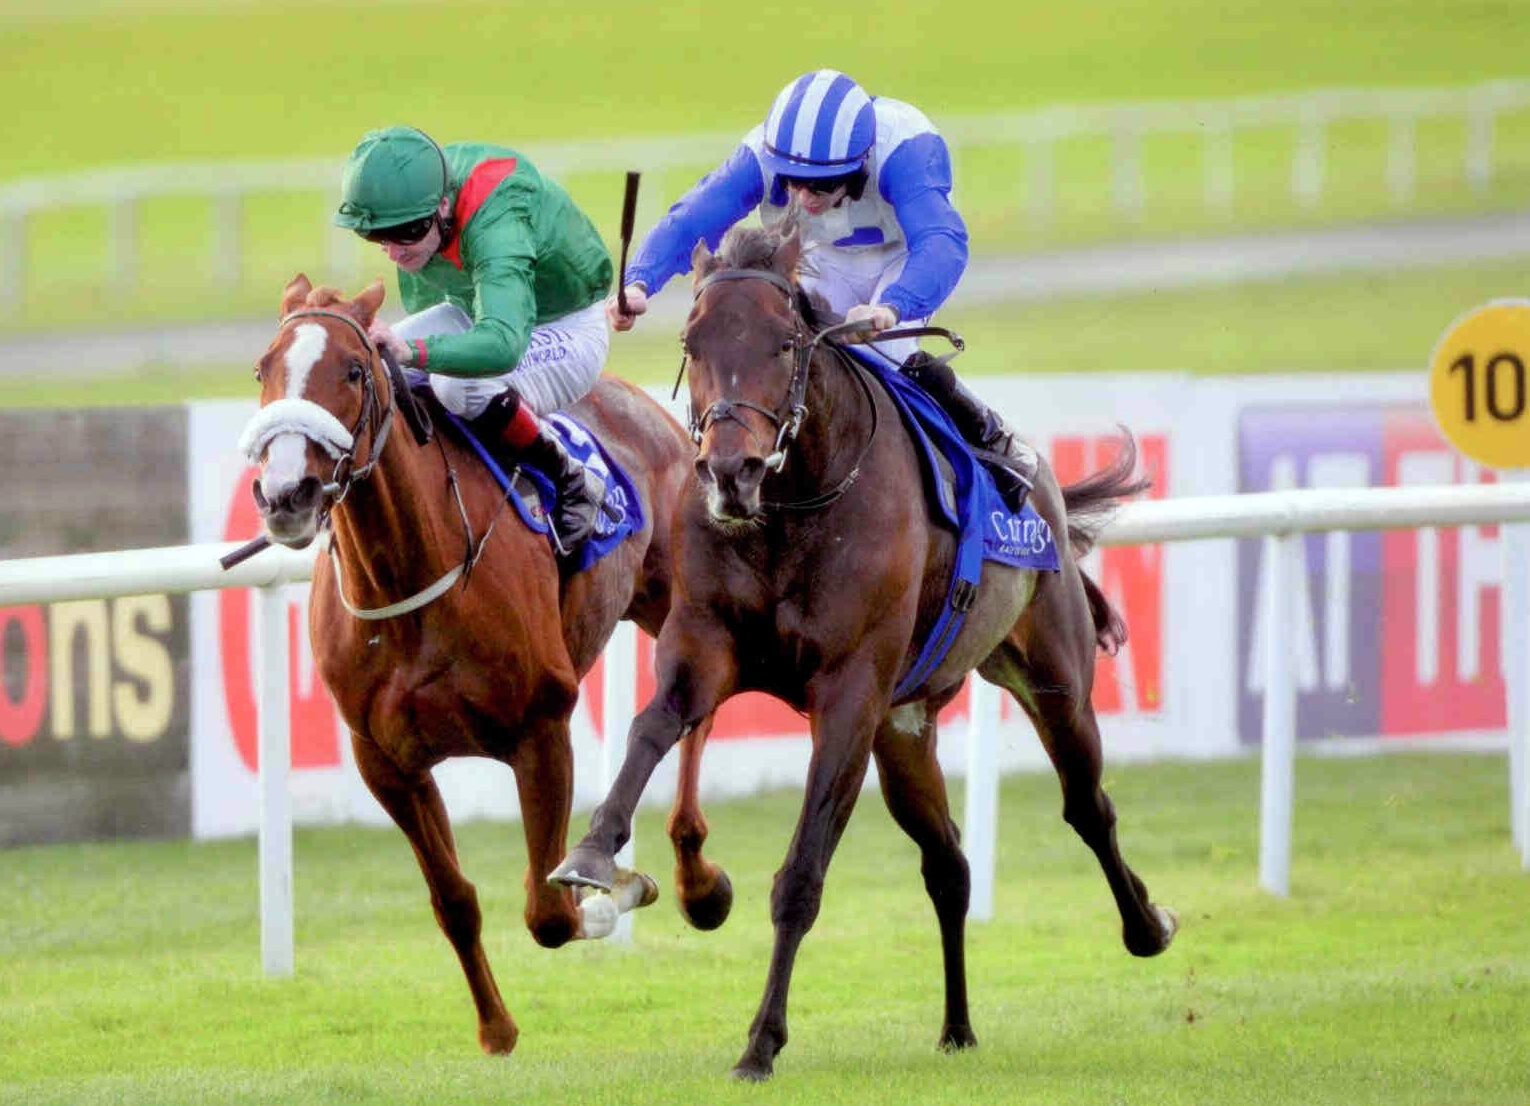 VAN SCHAICK battles back at the Curragh on October 13th 2015